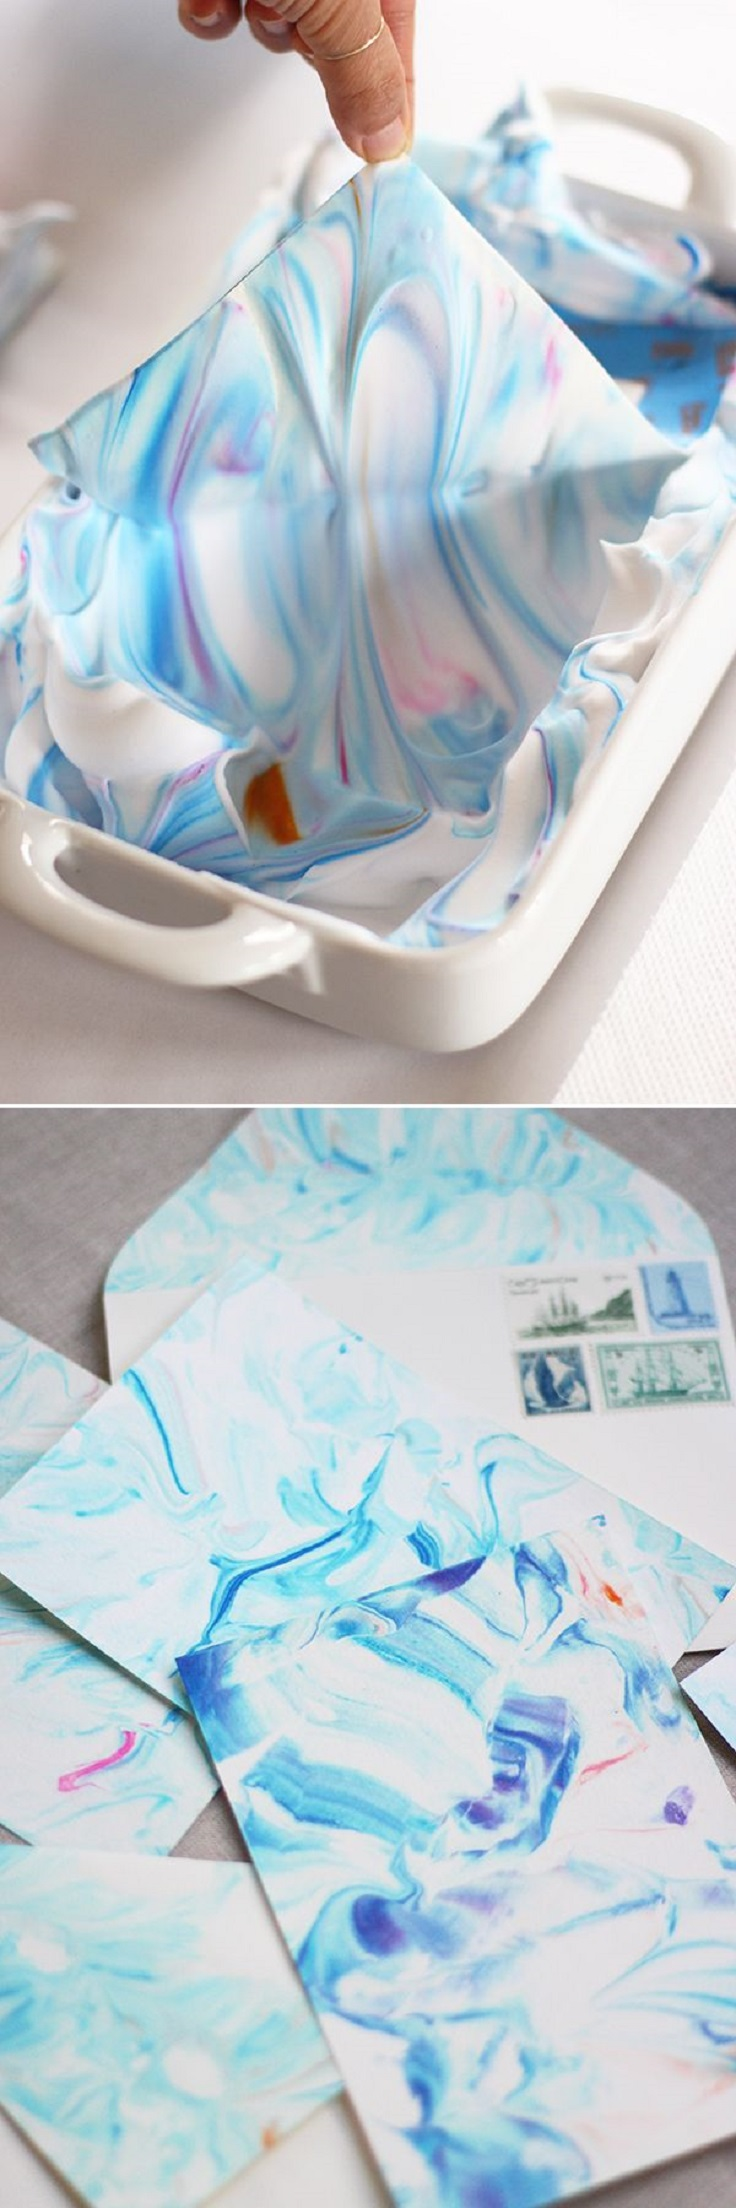 Marbling-Paper-with-Shaving-Cream